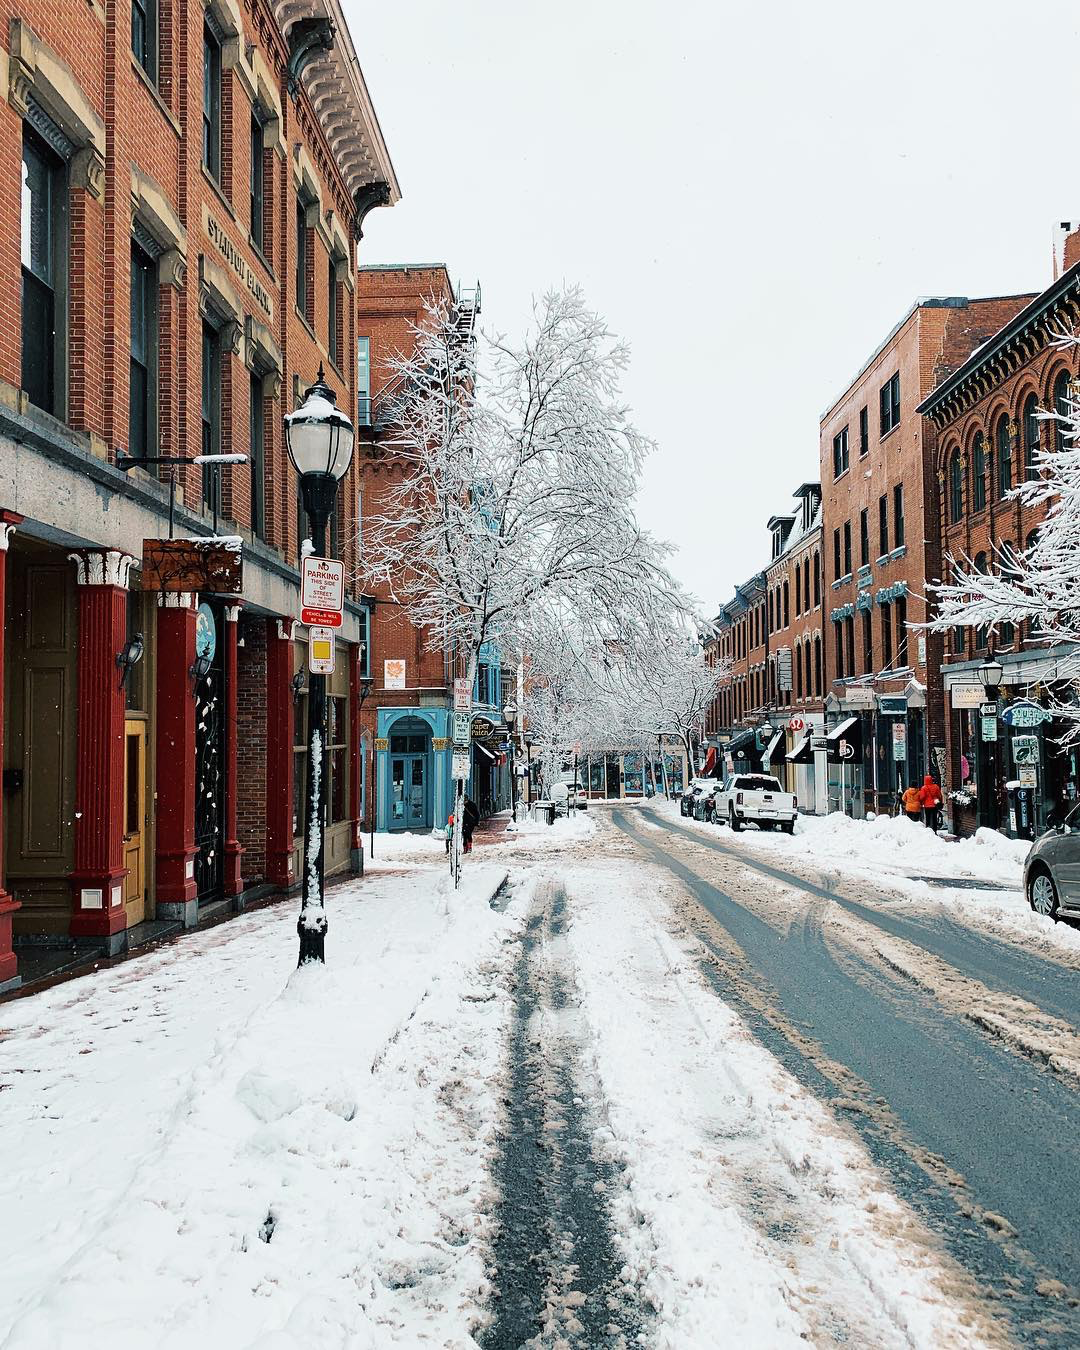 A snowy street, with brick buildings along either side.